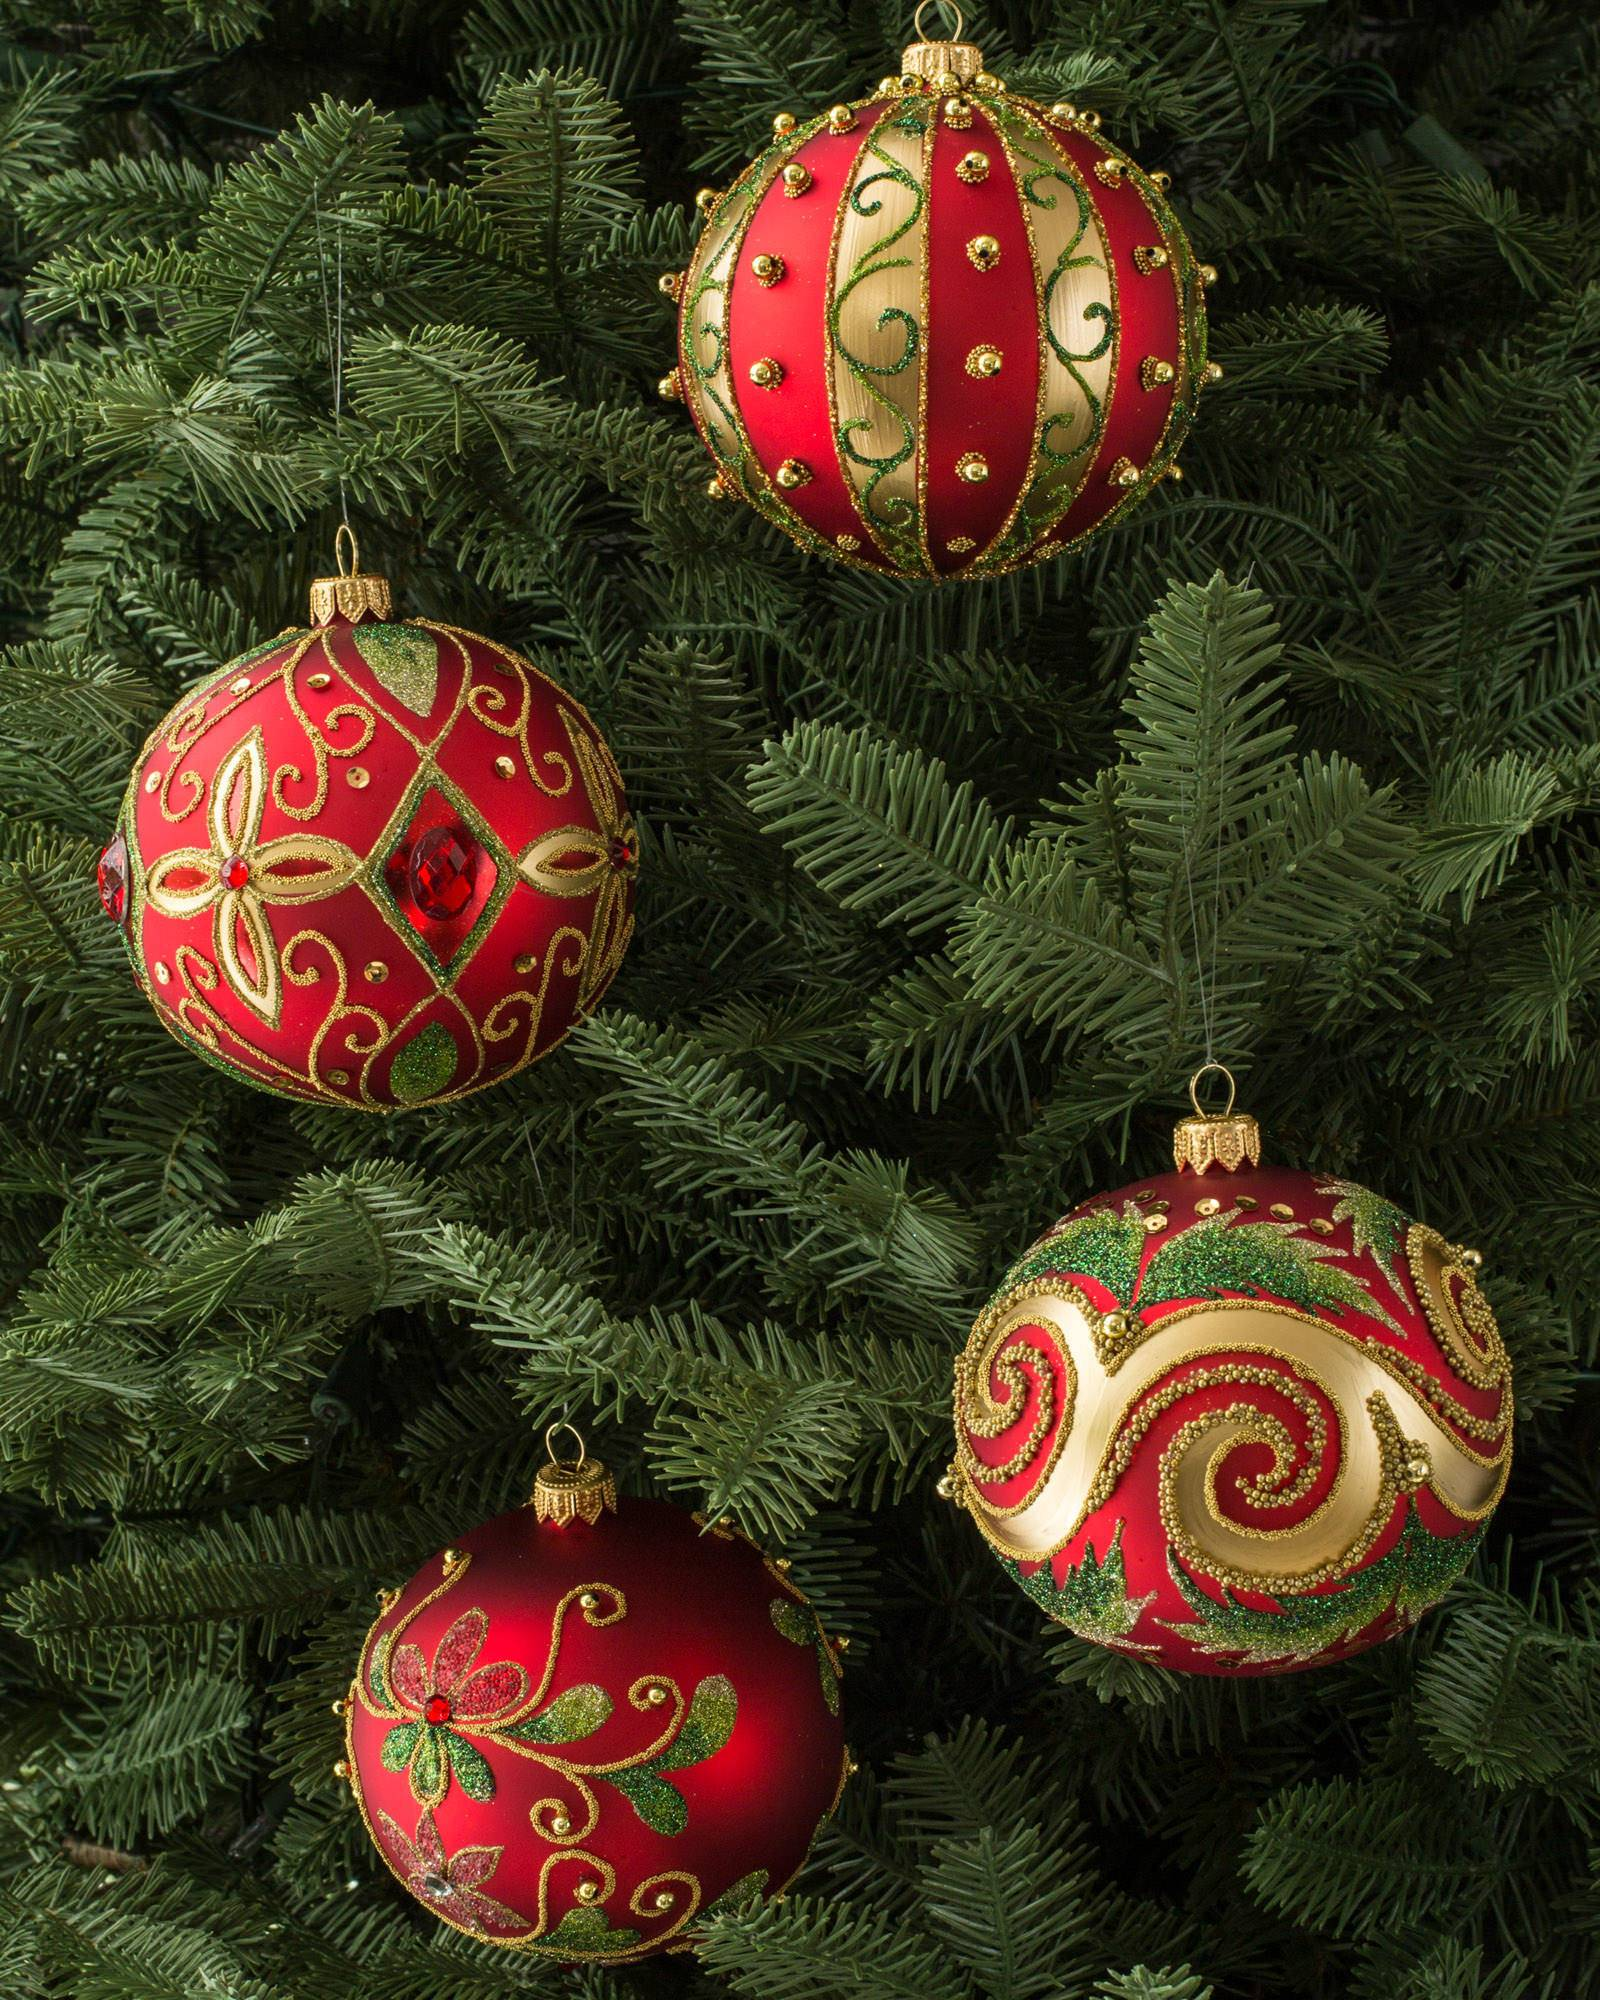 burgundy and gold decorated glass ball ornament set - Decorating Christmas Ornaments